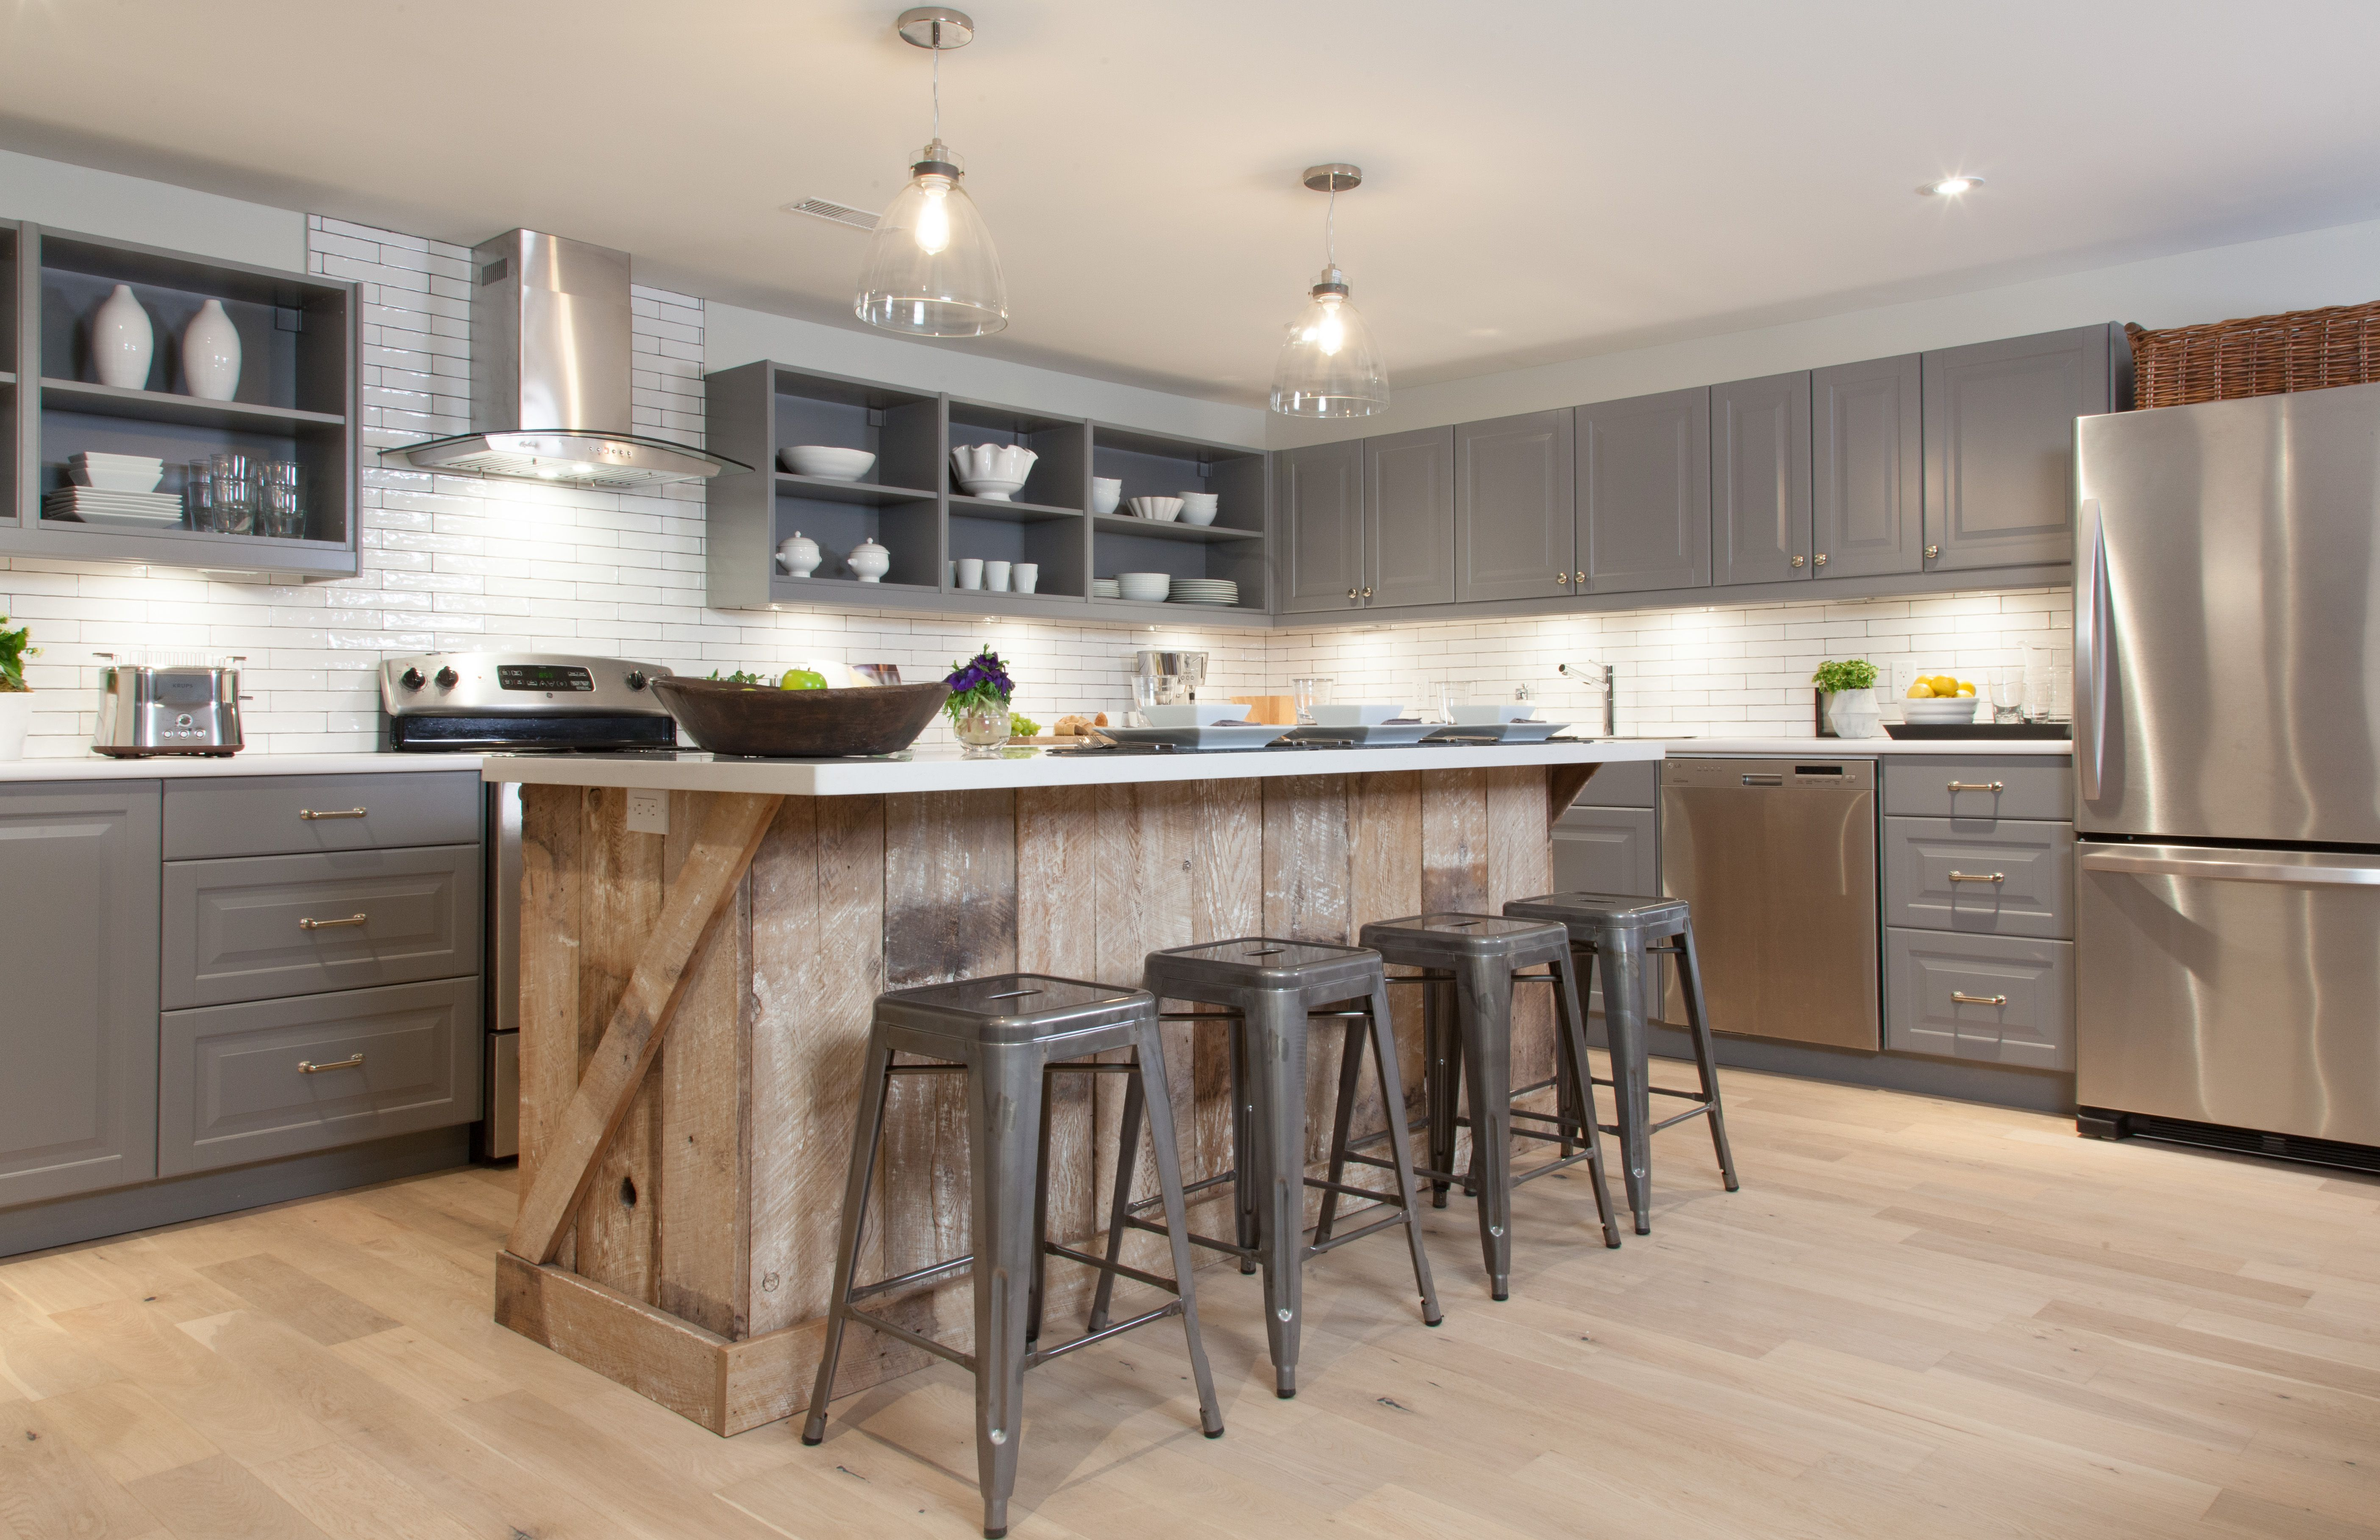 Modern Country kitchen with reclaimed wood island and ... on Modern Kitchen Counter Decor  id=43586